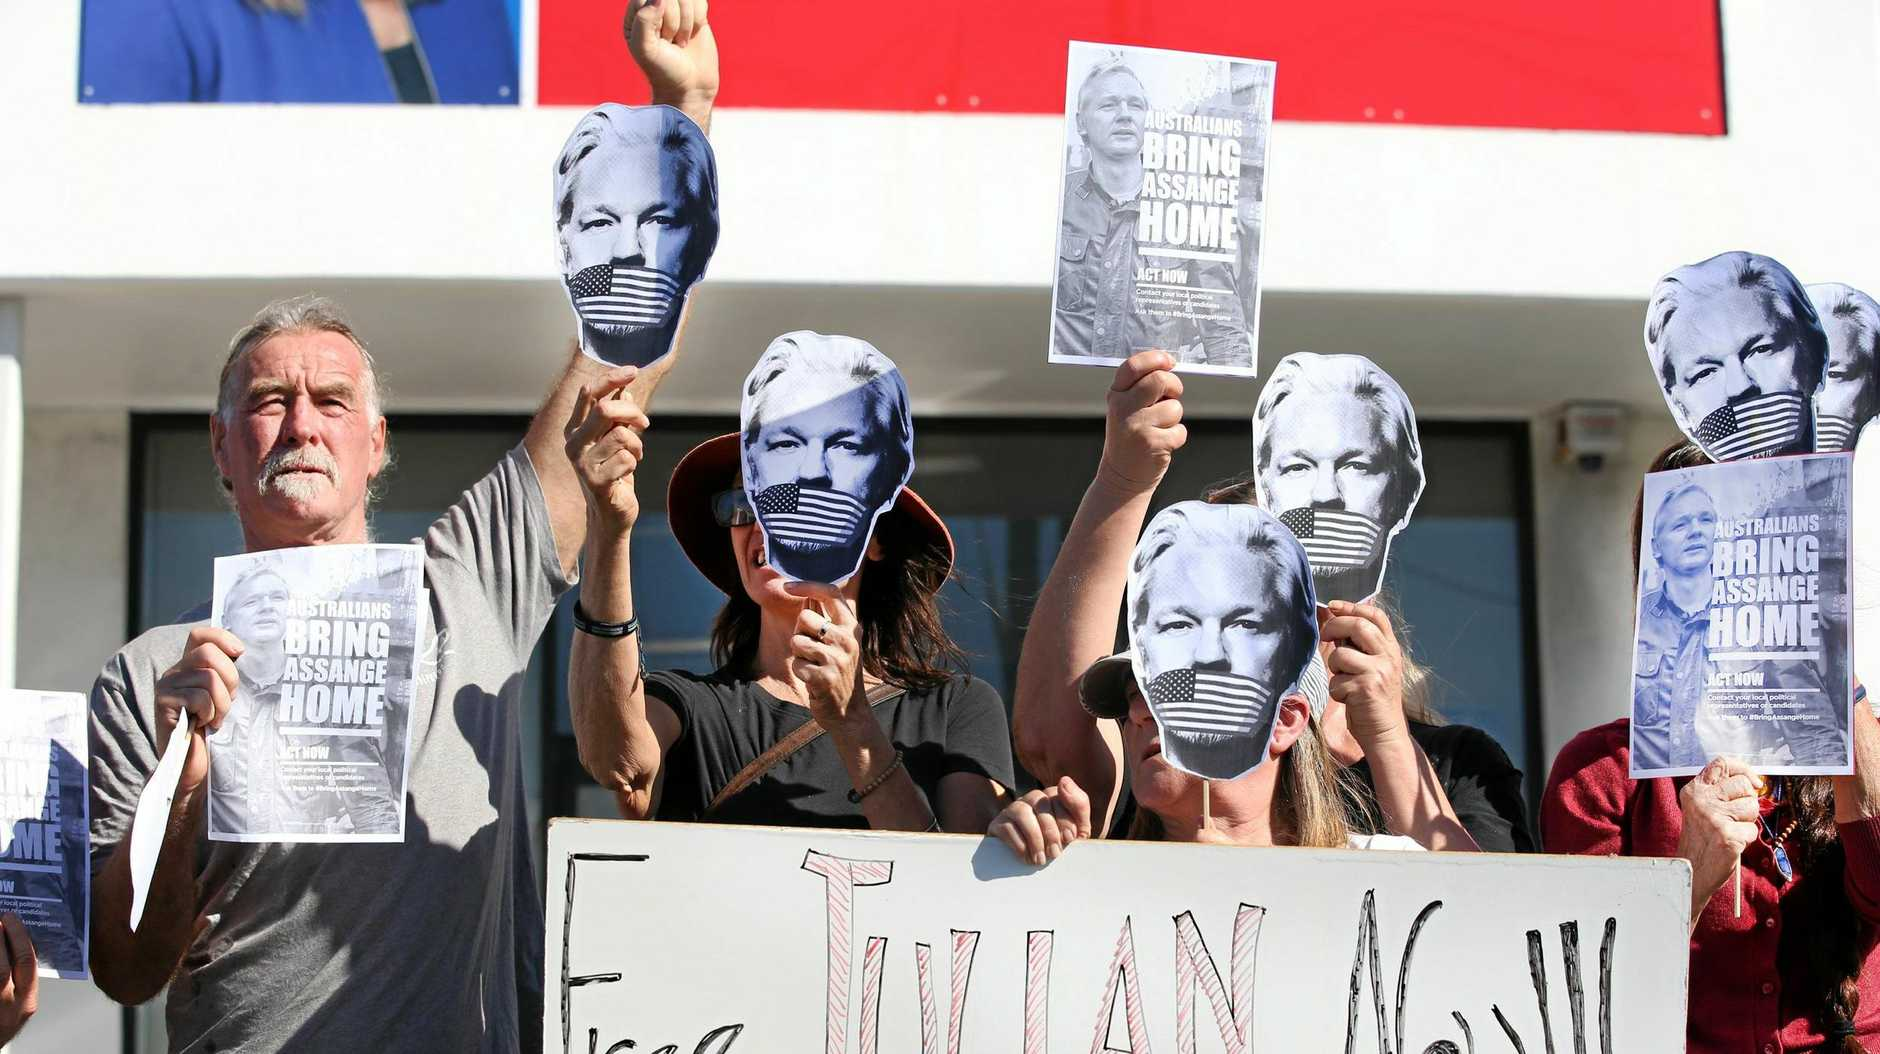 Free Julian Assange organiser Dean Jeffrey's (left) with his fellow protesters.